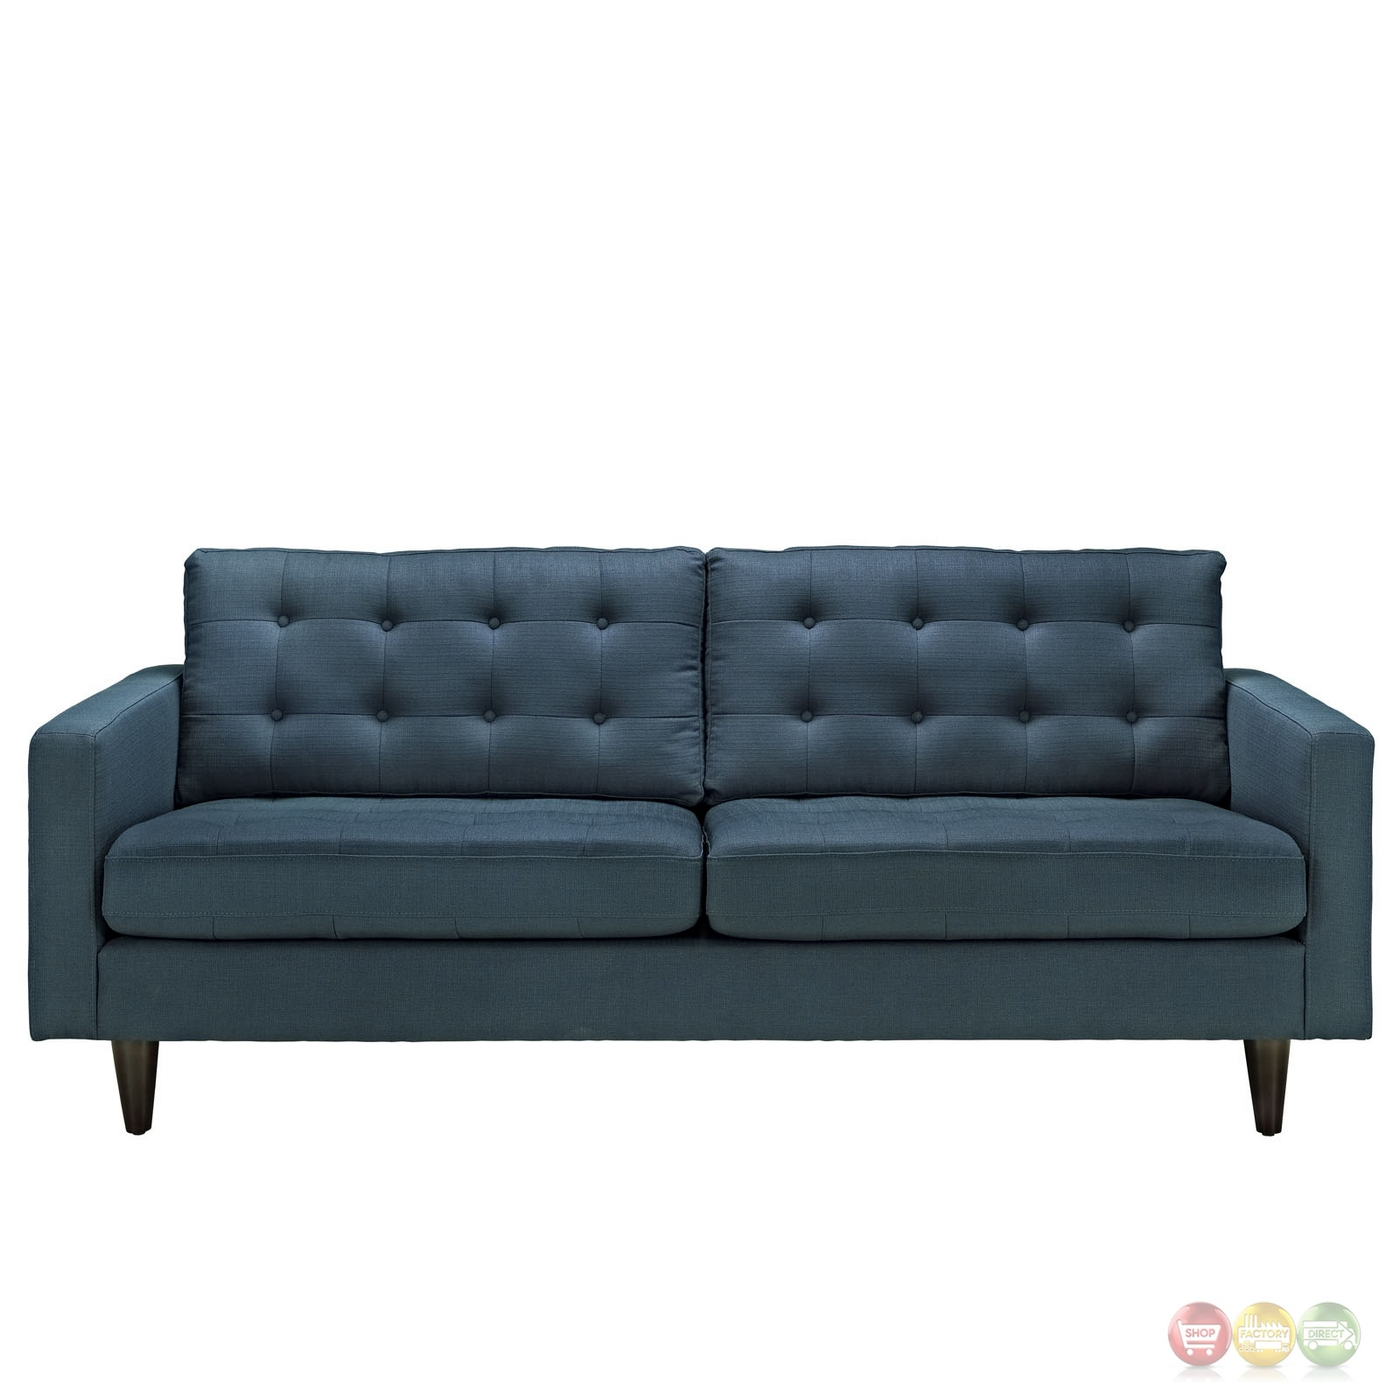 Empress contemporary button tufted upholstered sofa azure for Furniture furniture